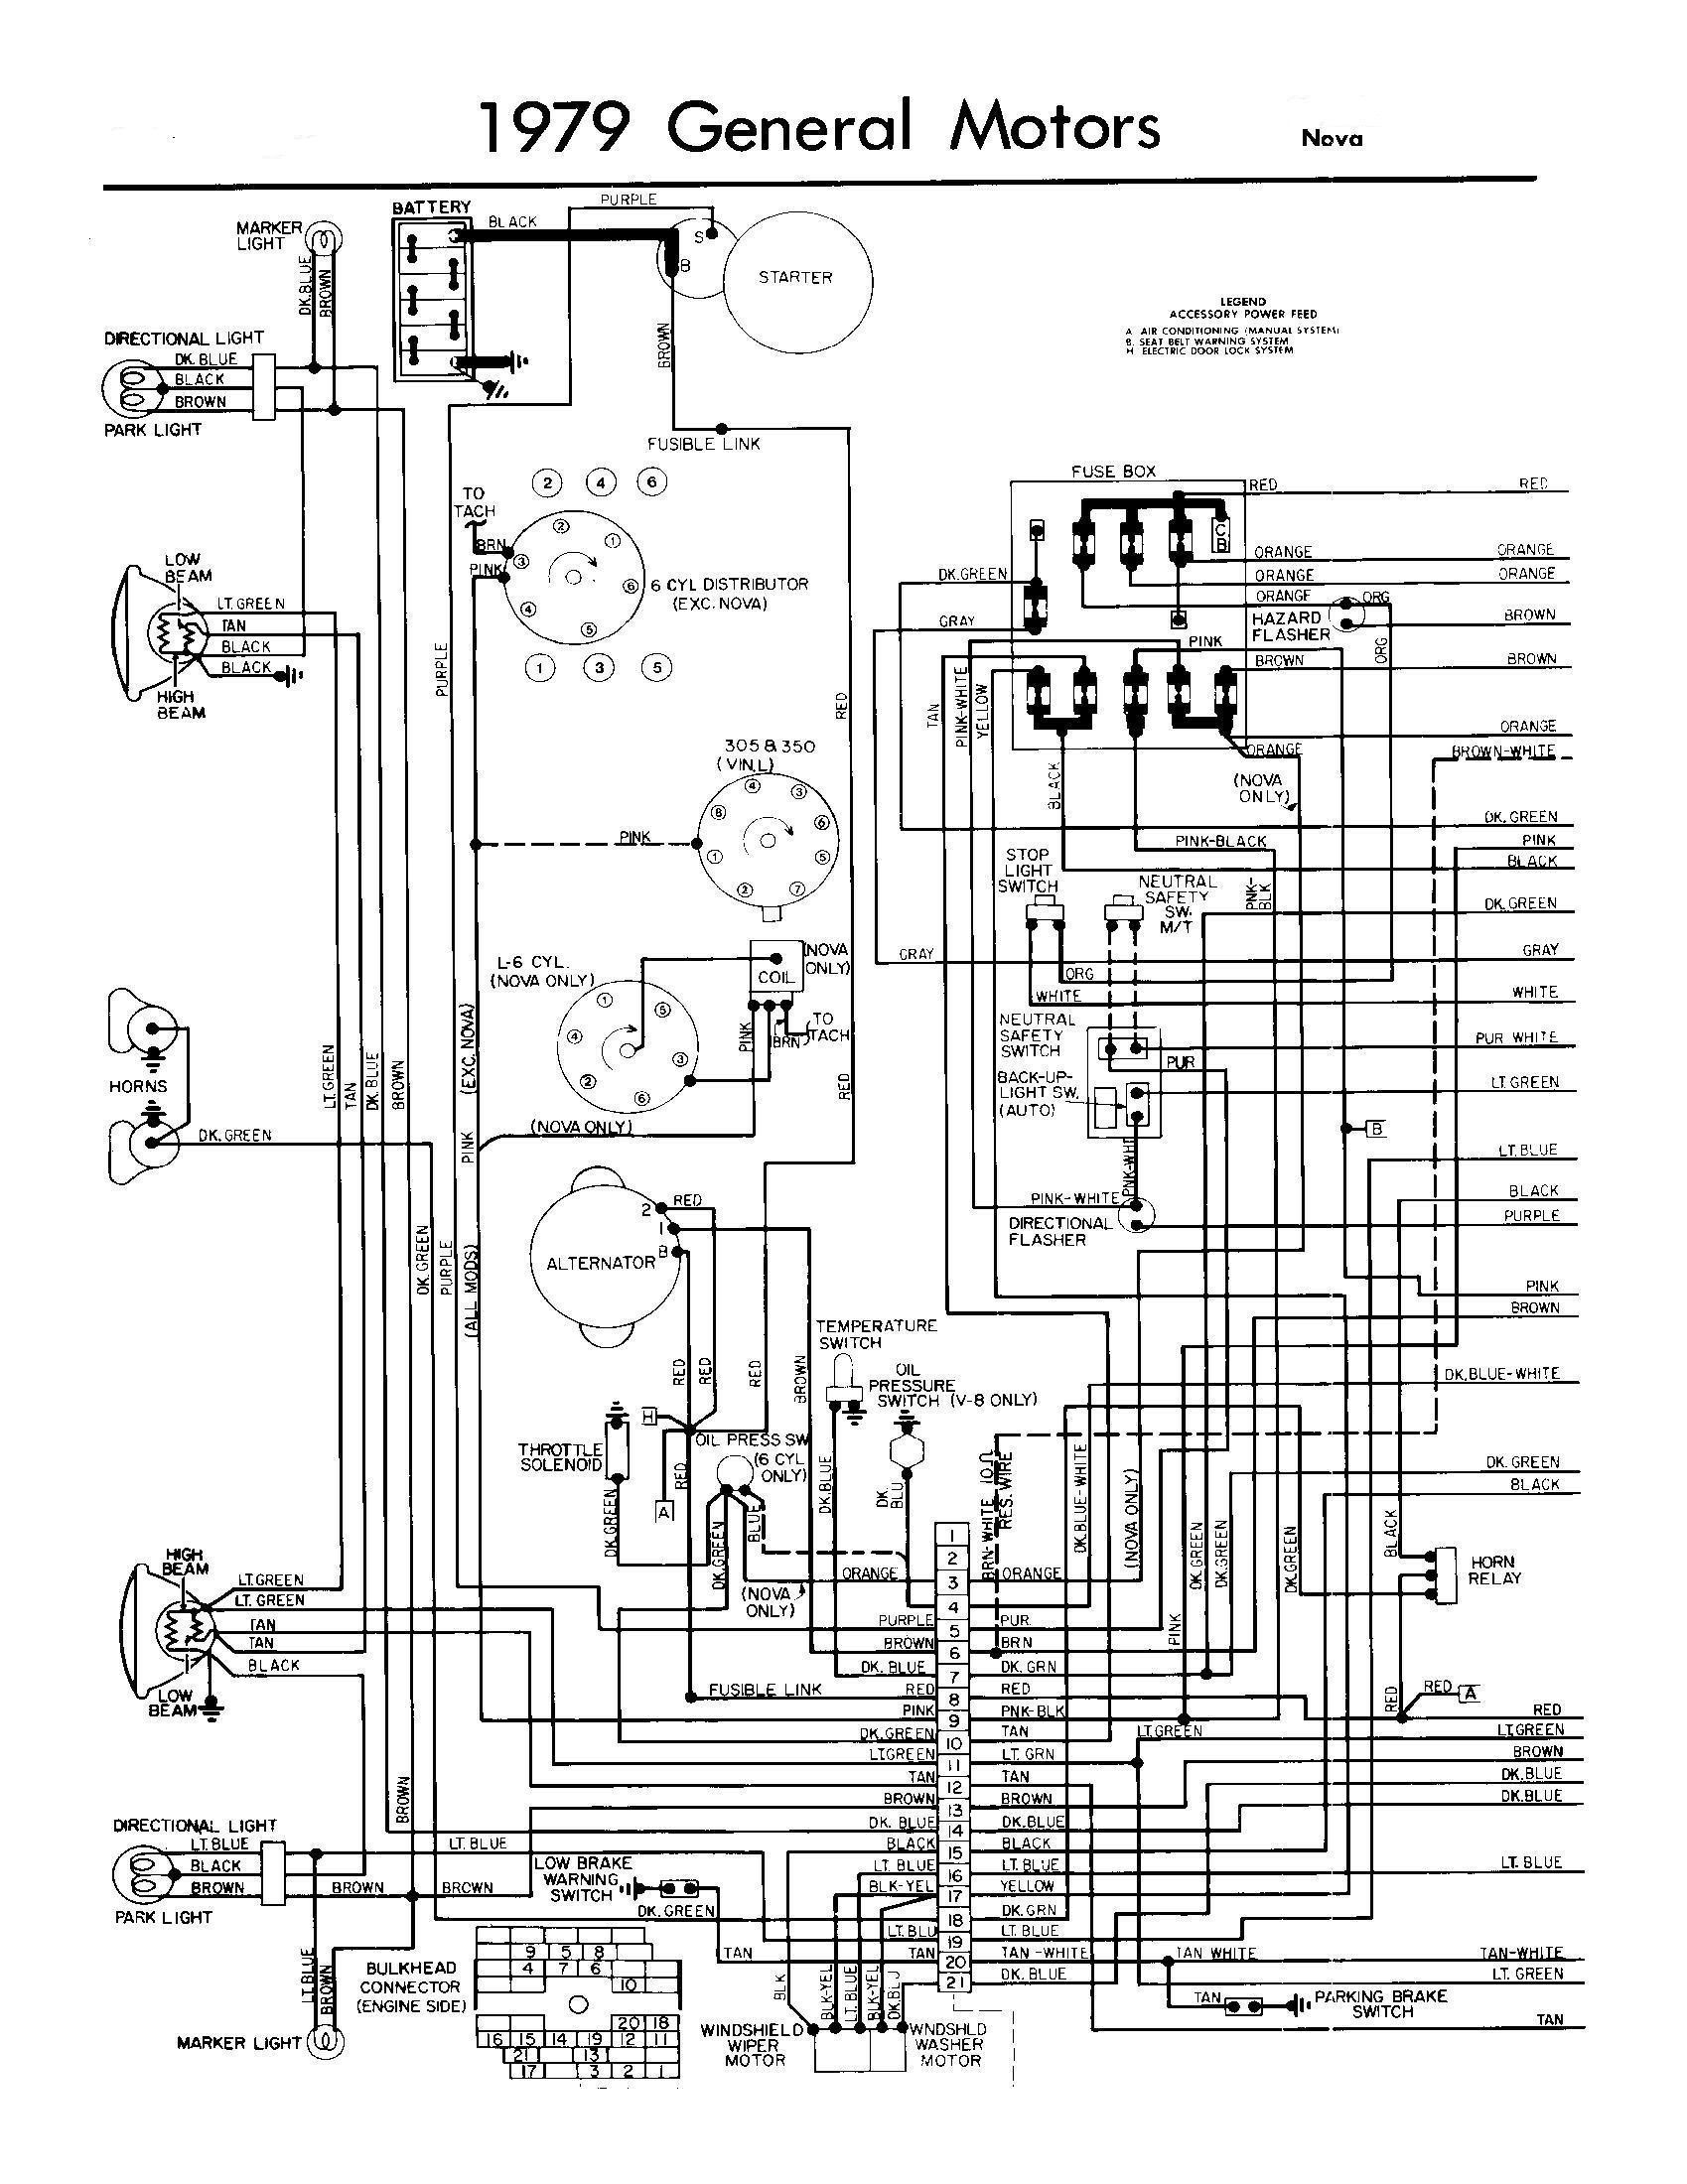 caterpillar 3208 marine engine wiring diagram gallery ford 8630 wiring diagram free picture schematic 1977 chevy wiring diagram free picture schematic #12